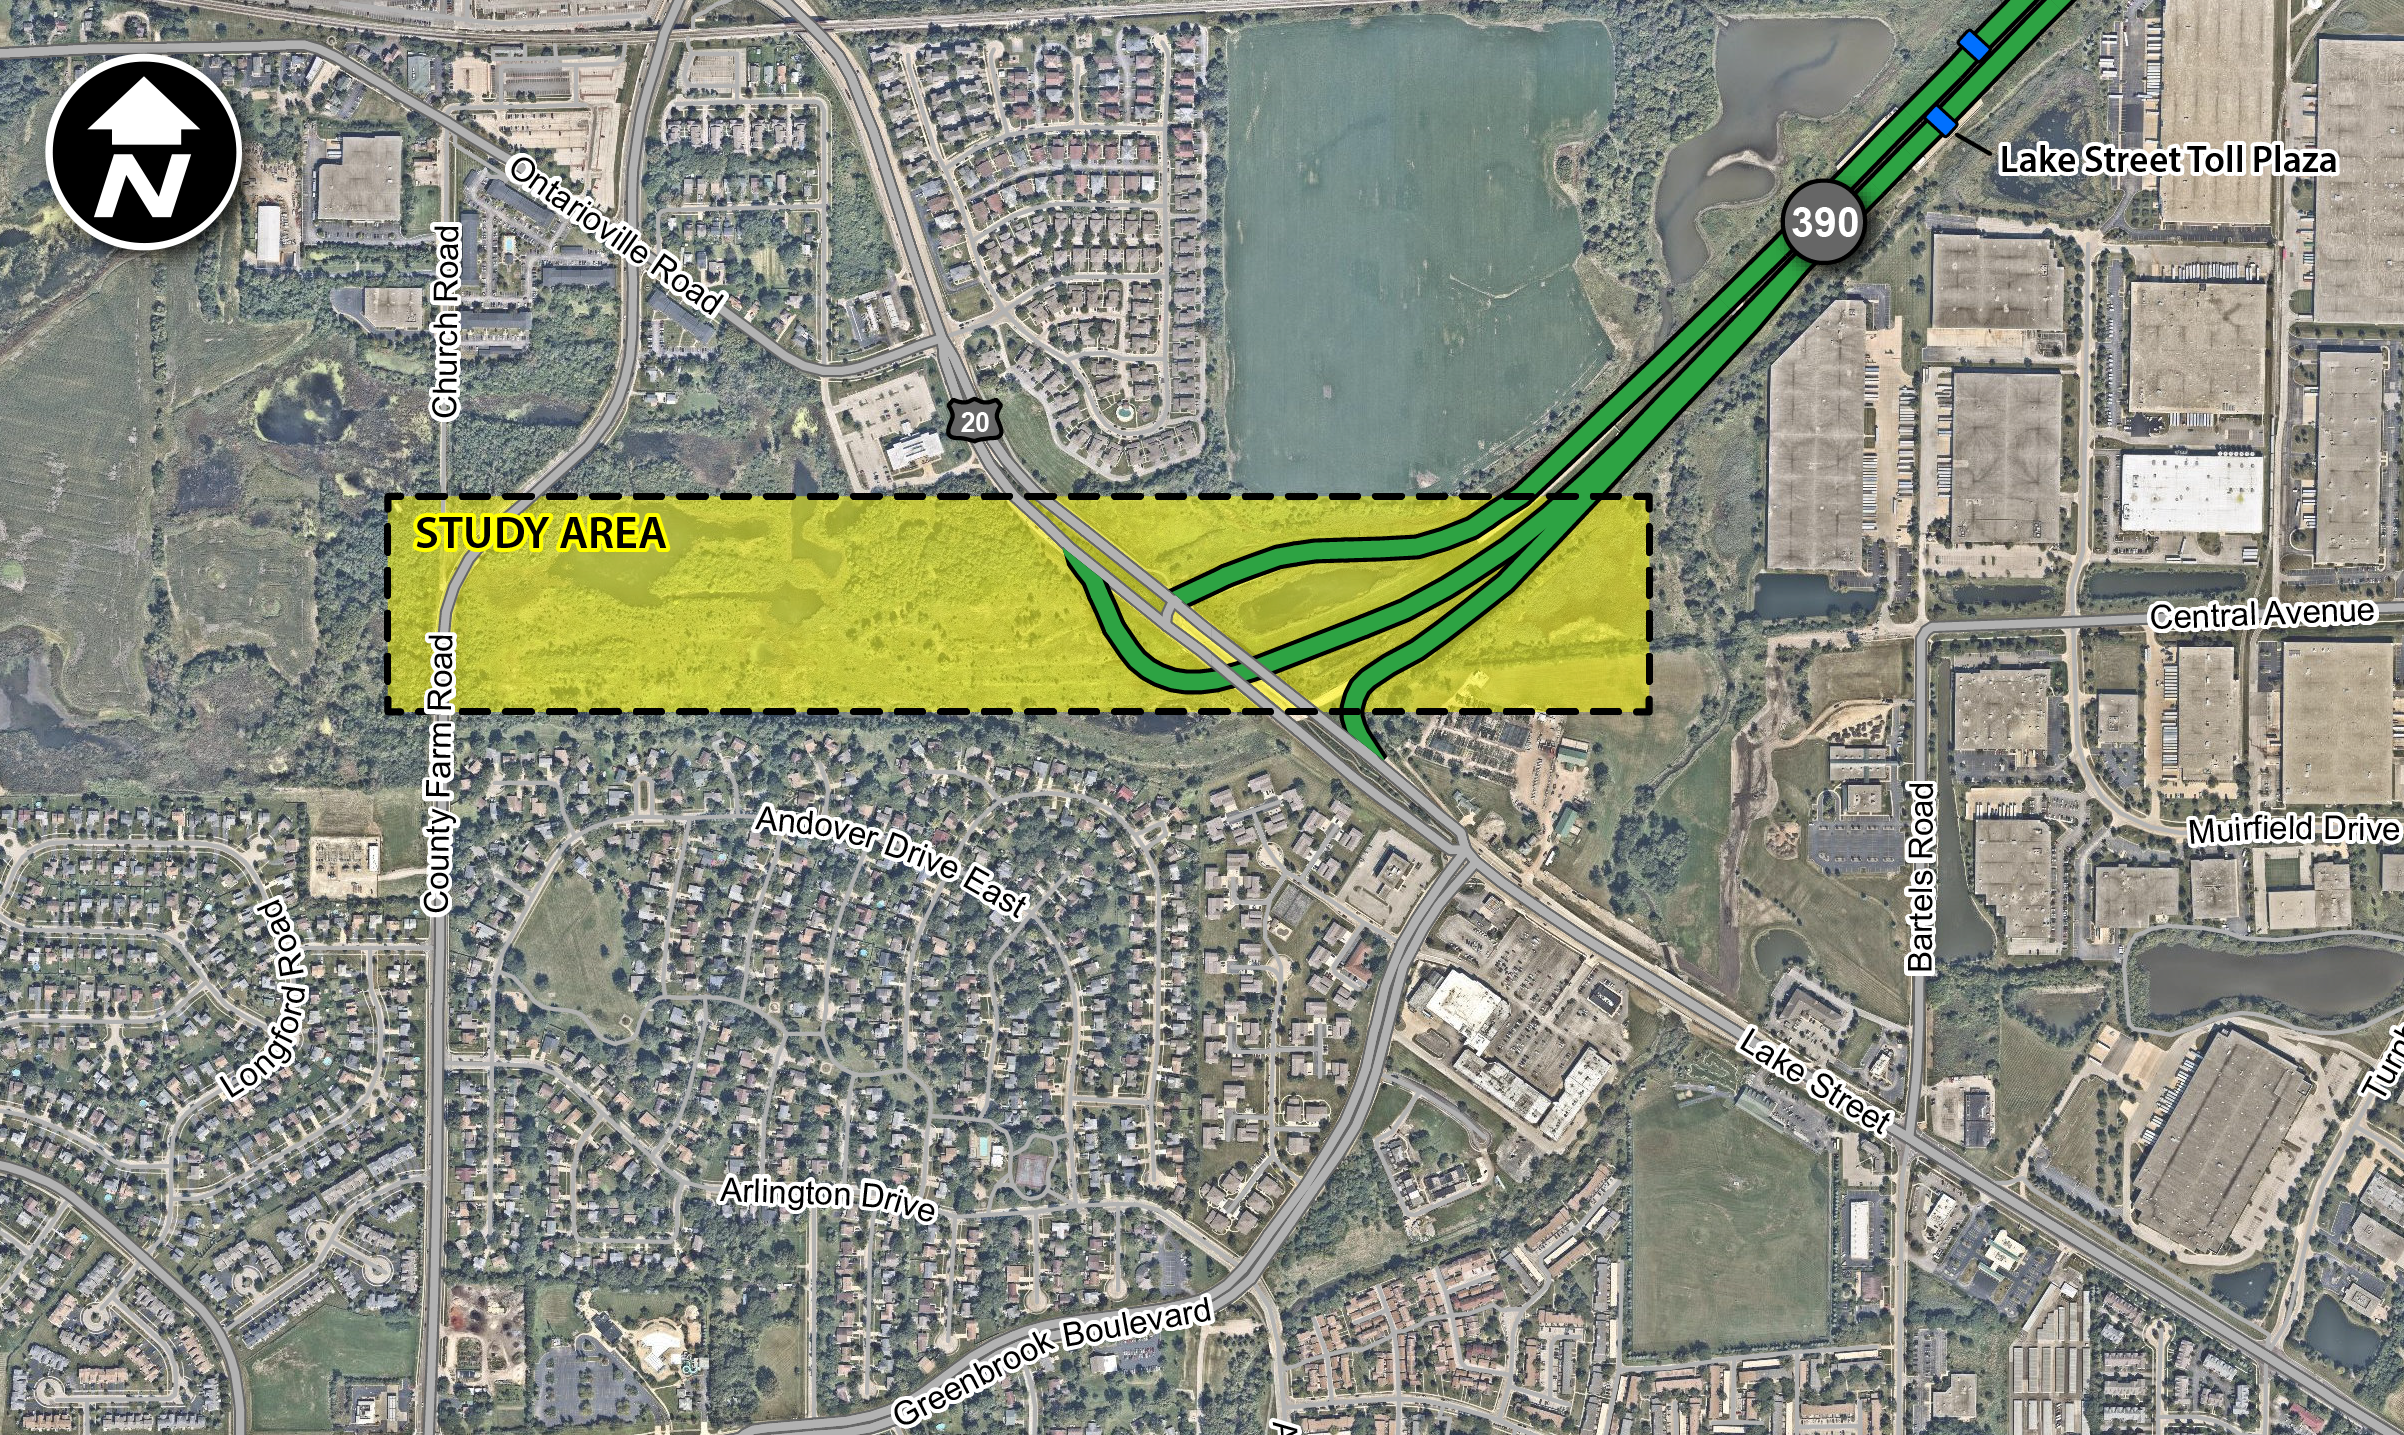 An overhead map detailing the study area for the Route 20 interchange study Opens in new window